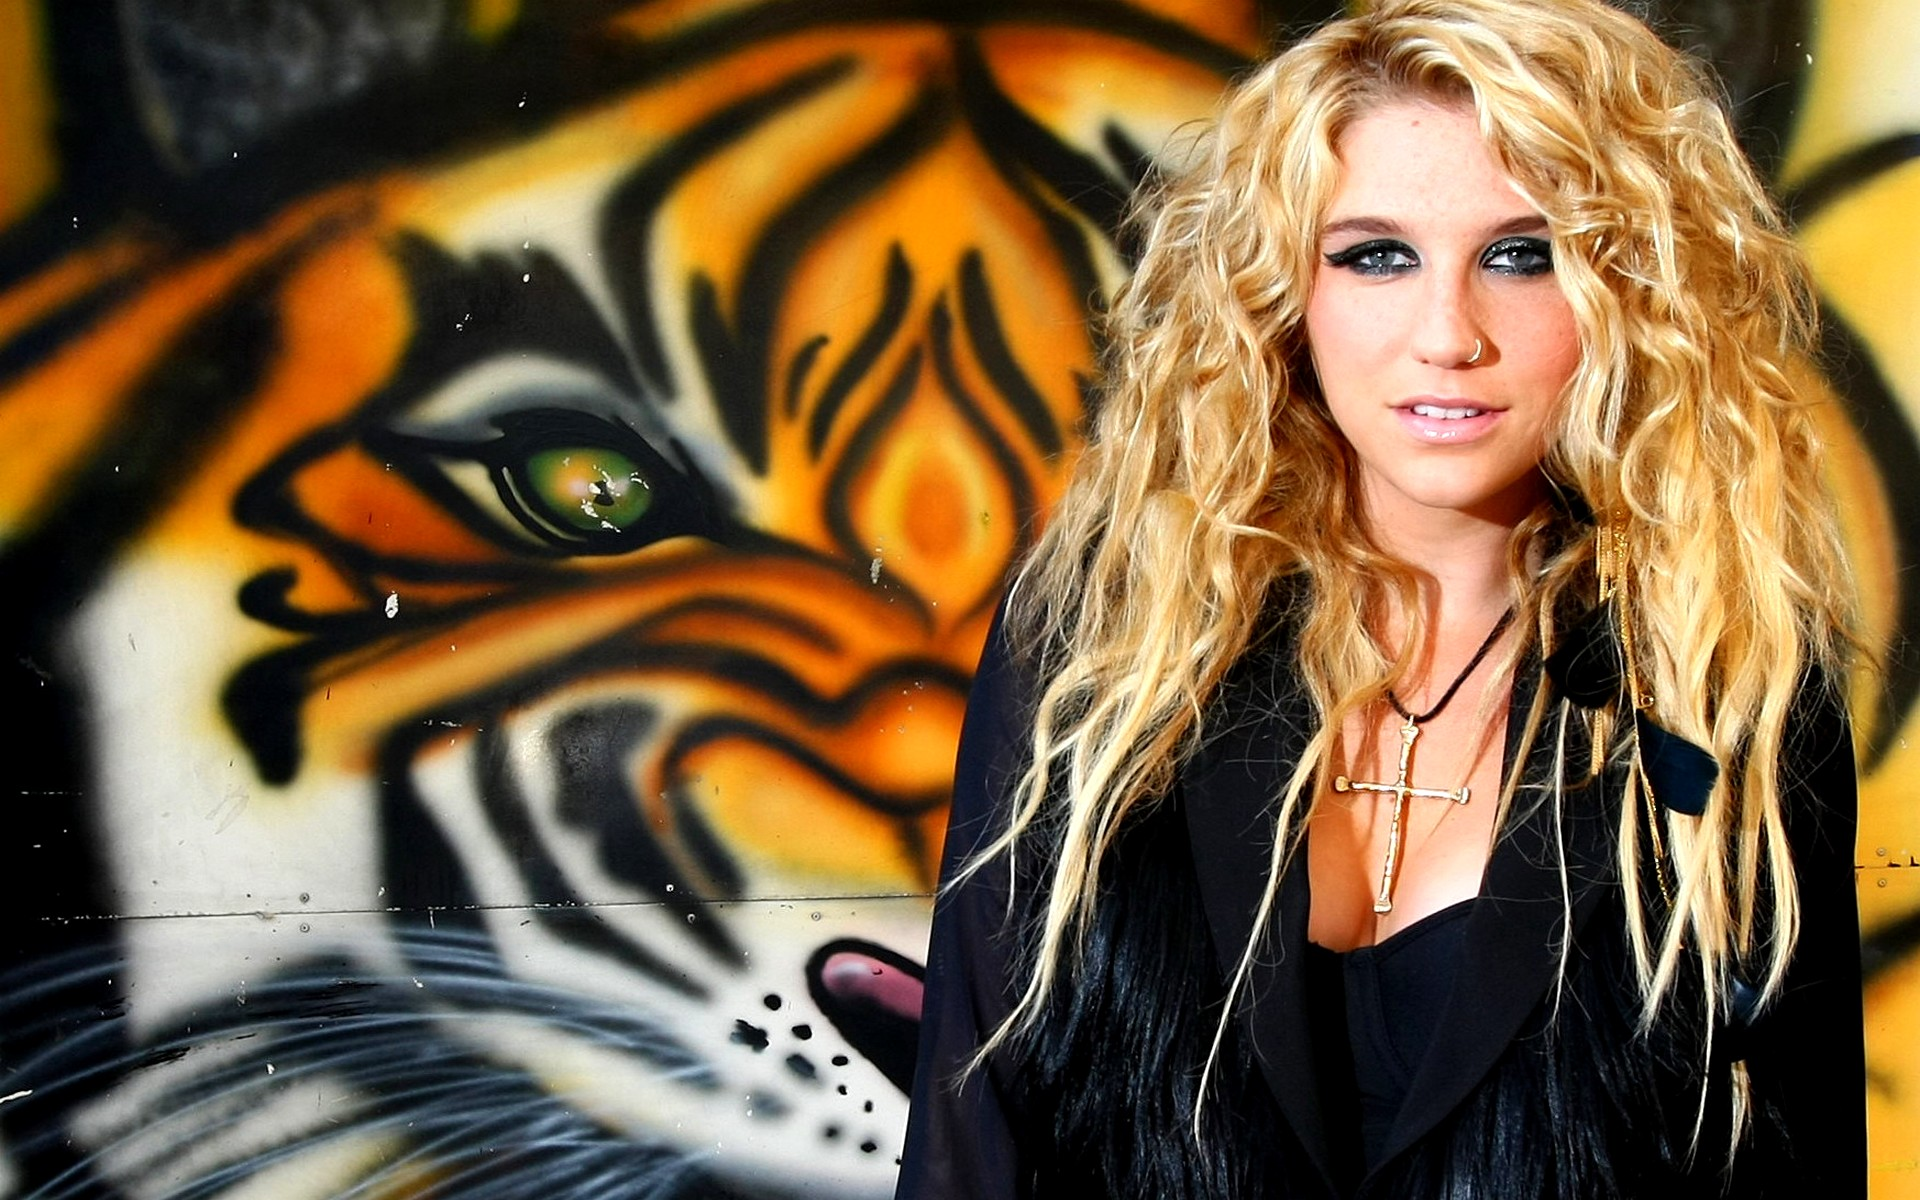 Papel de Parede Kesha Tigre Wallpaper para Download no Celular ou 1920x1200